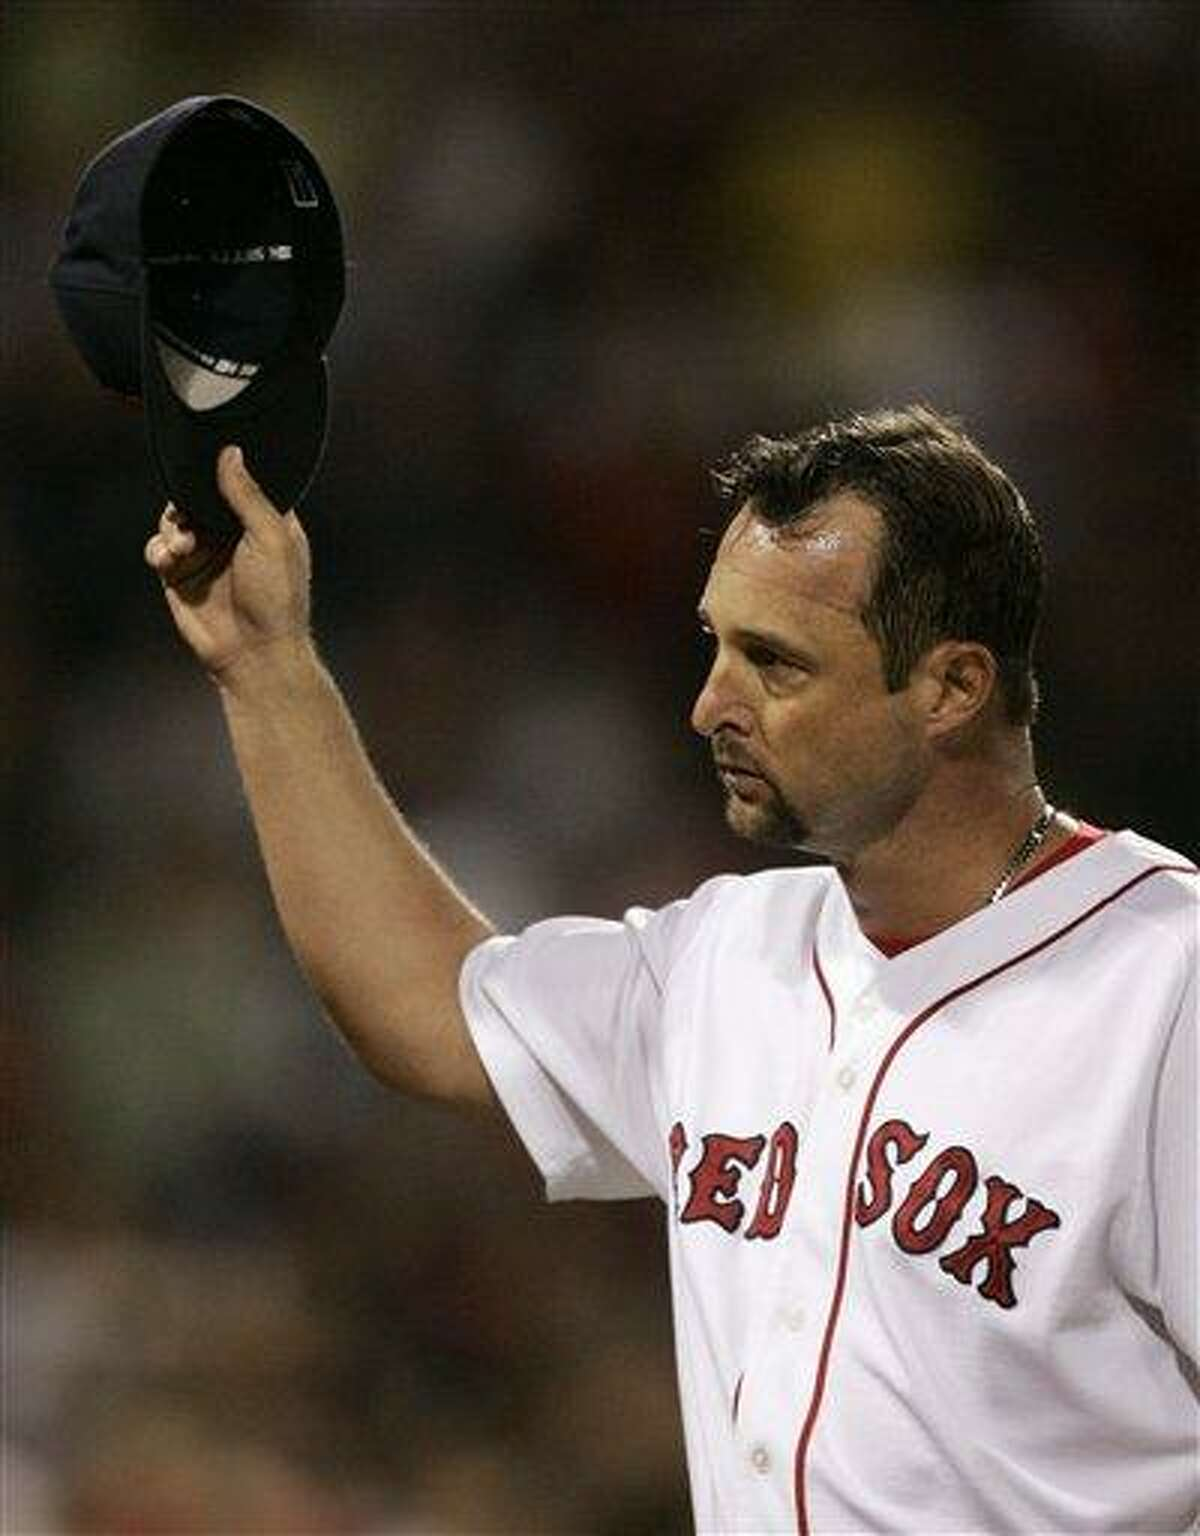 ** FILE ** Boston Red Sox starter Tim Wakefield tips his cap to the crowd while leaving in the seventh inning leading 2-1 against the Texas Rangers during their baseball game at Fenway Park in Boston, in this June 29, 2007 file photo. (AP Photo/Charles Krupa)